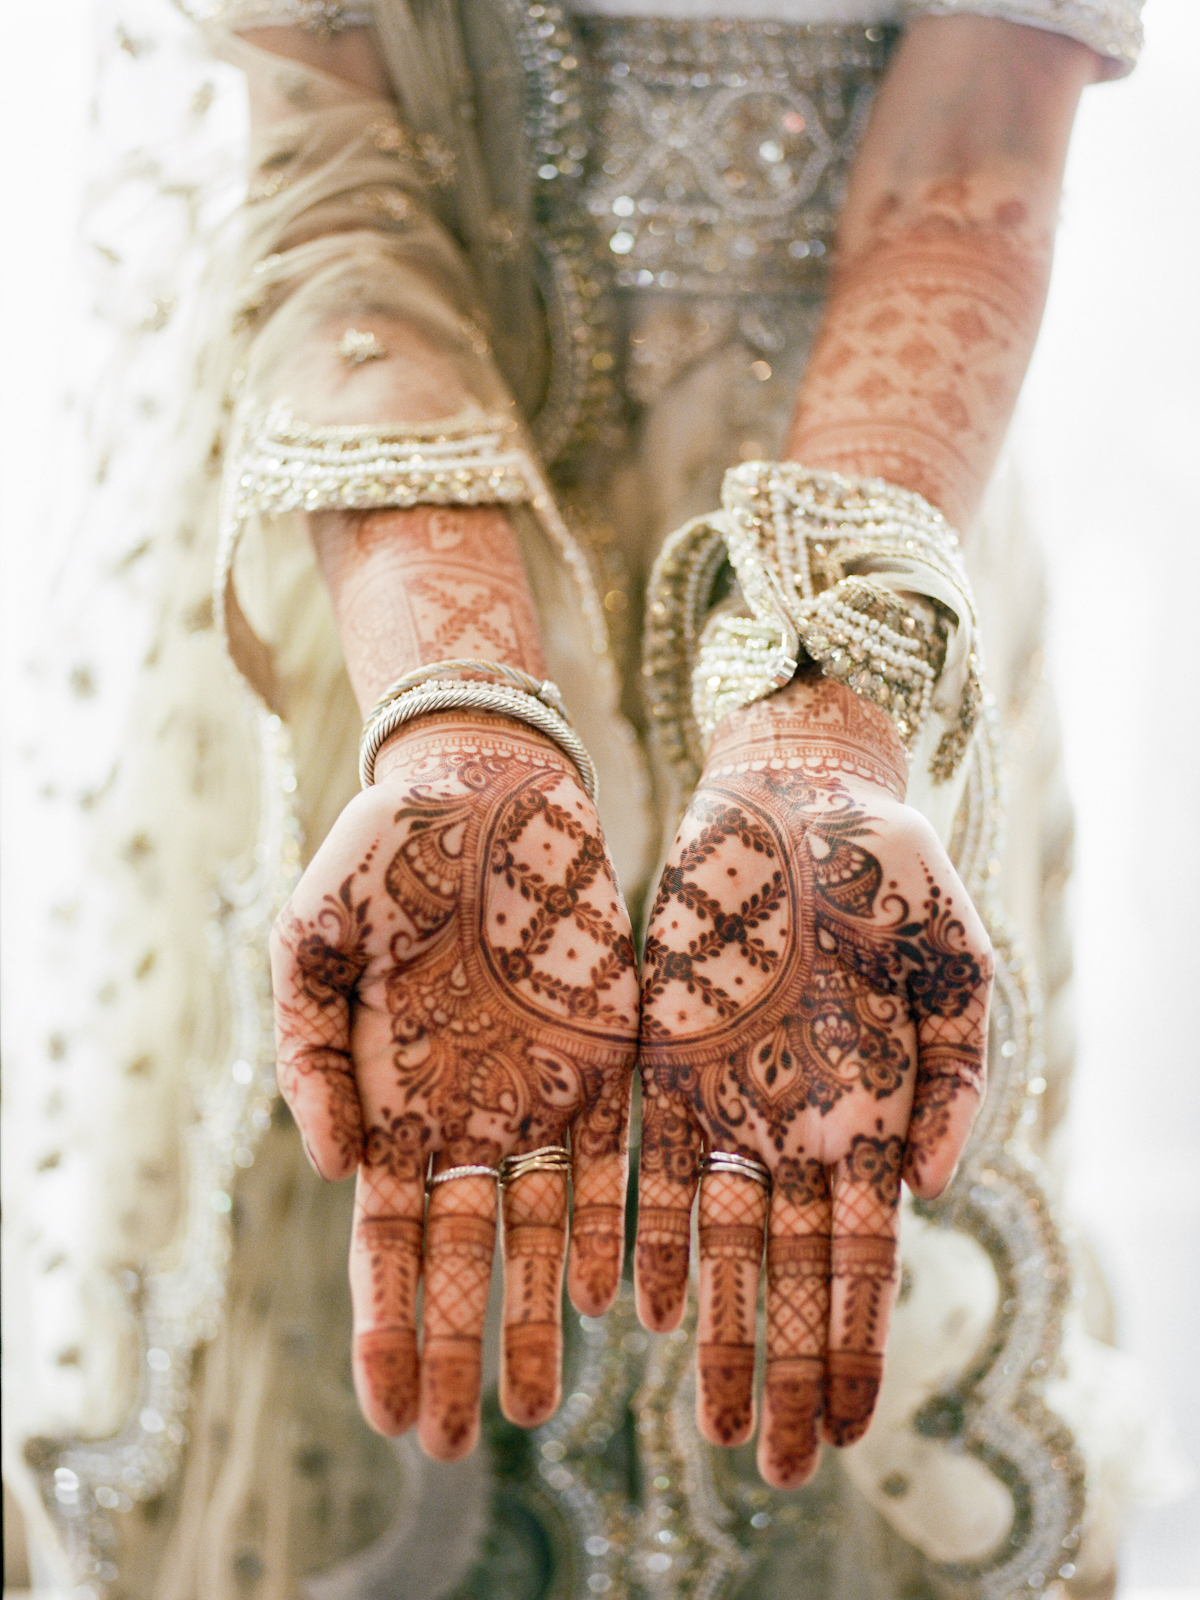 South asian bride with henna art on her hands at Rainbow Room wedding